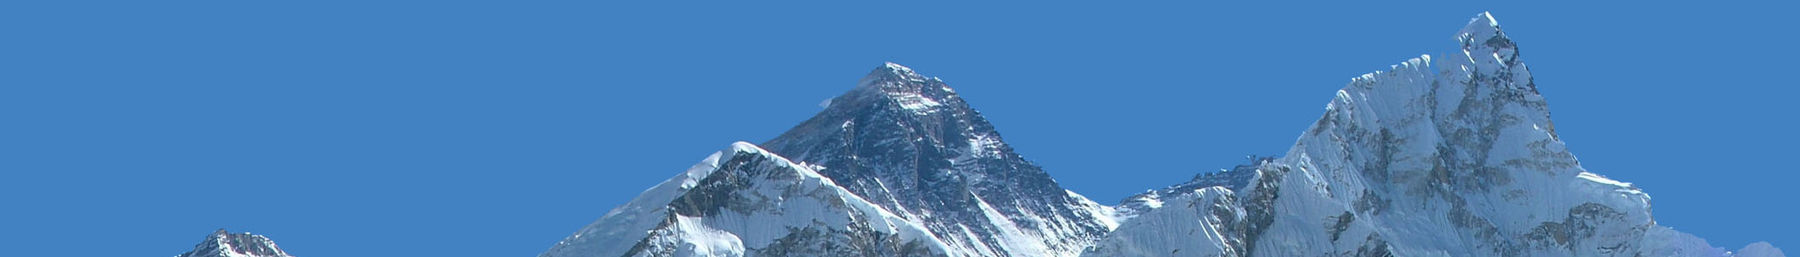 Mount Everest banner 2.jpg